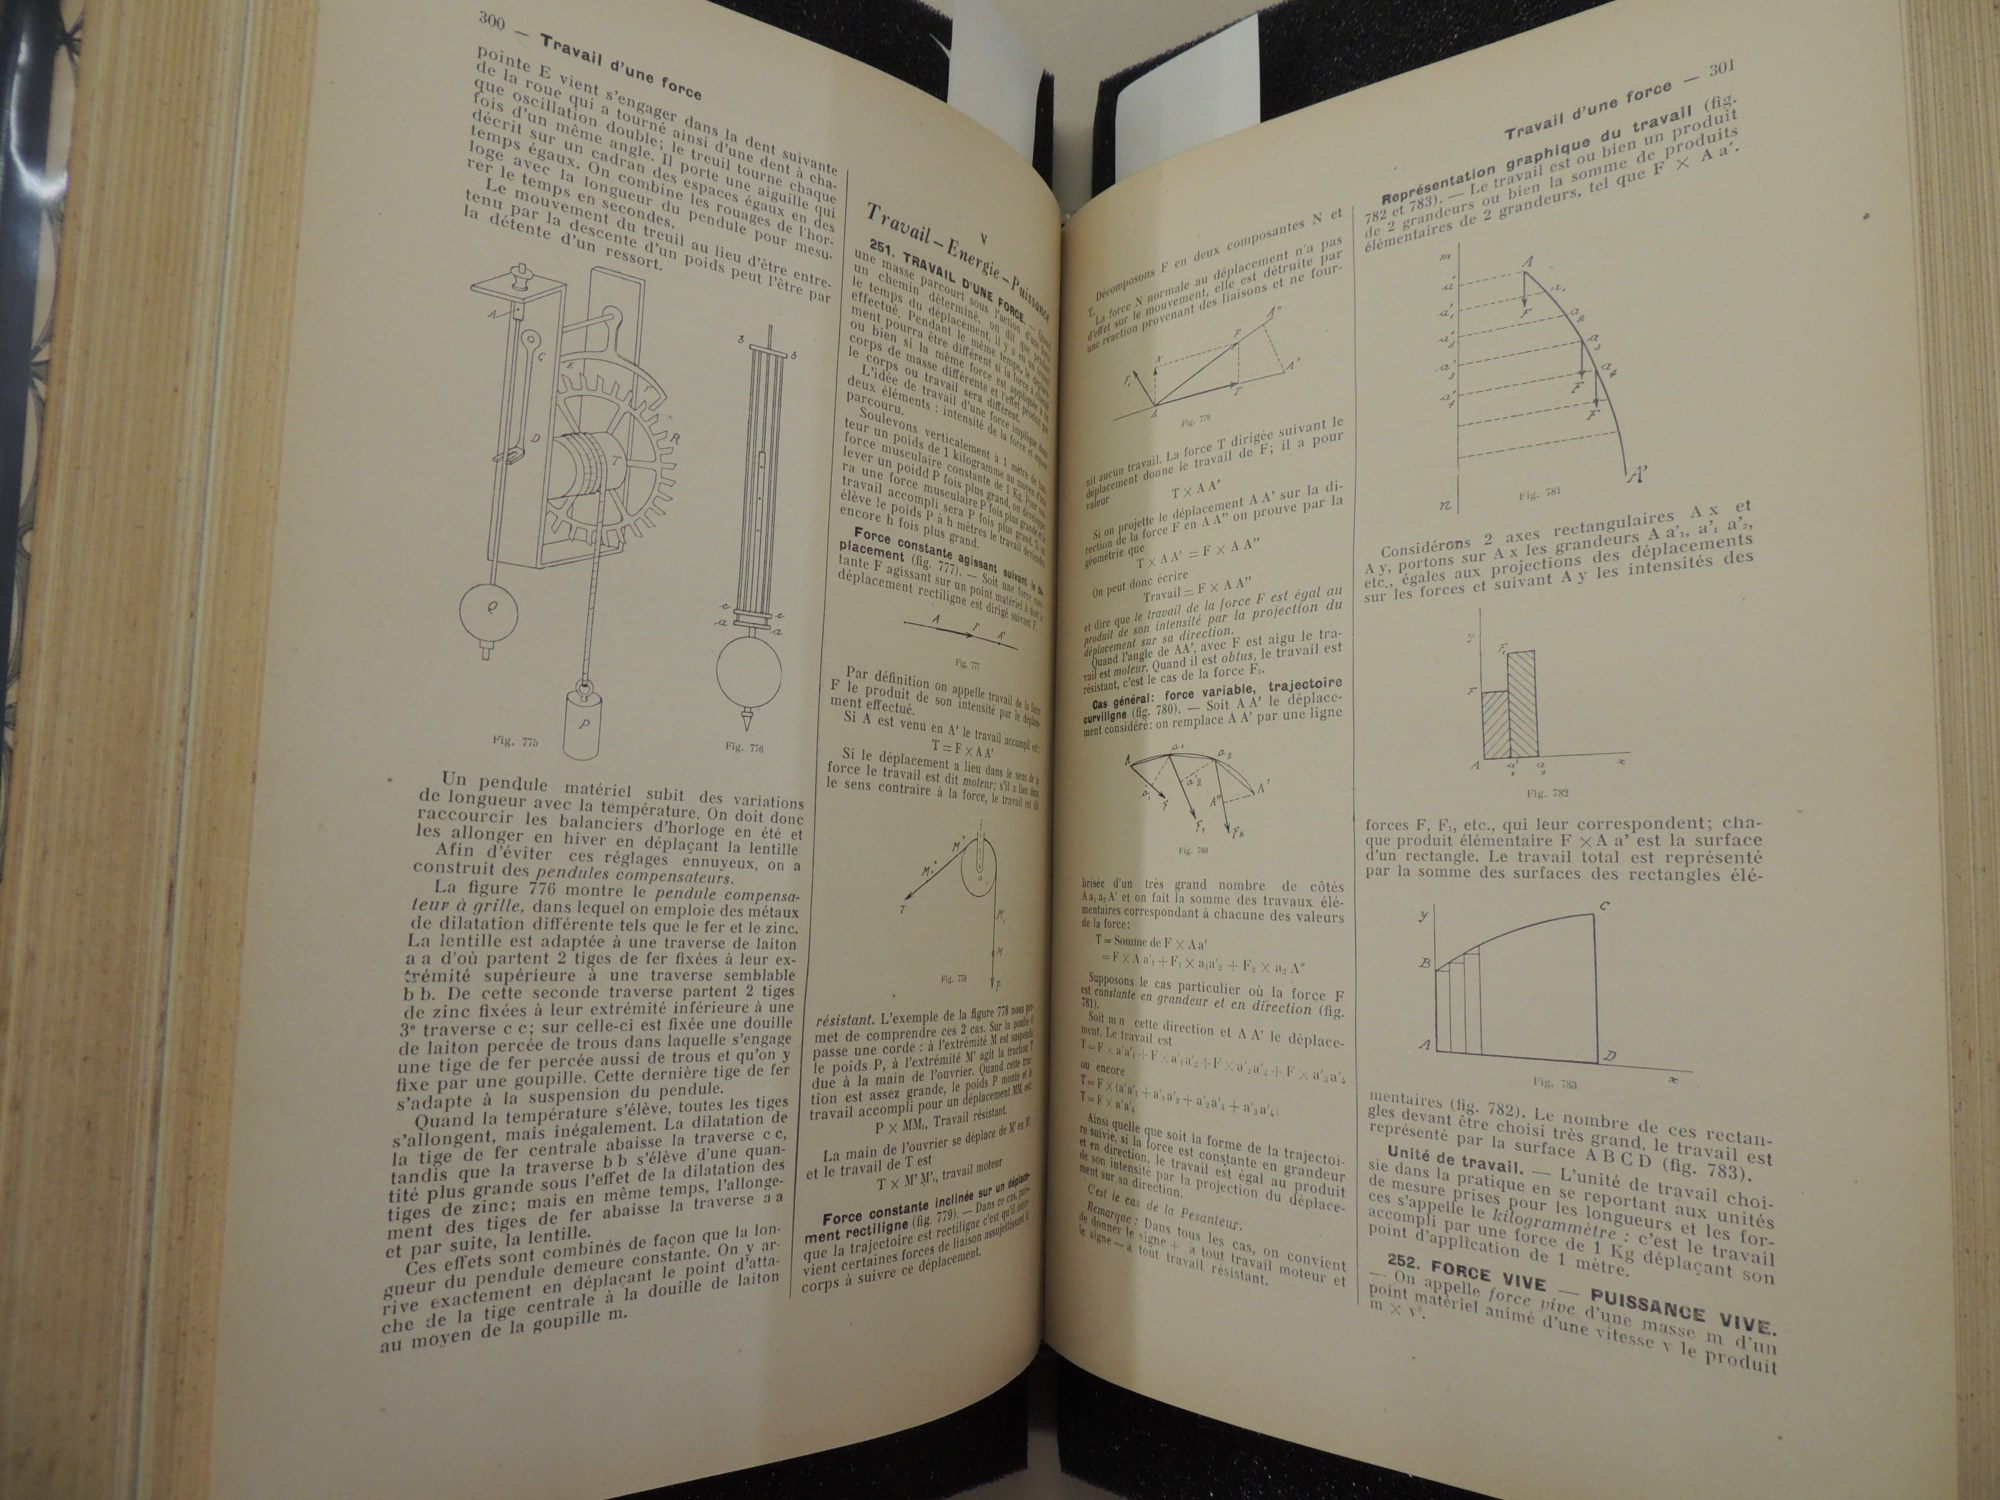 hight resolution of two pages show technical text in french along with several scientific and mathematical diagrams